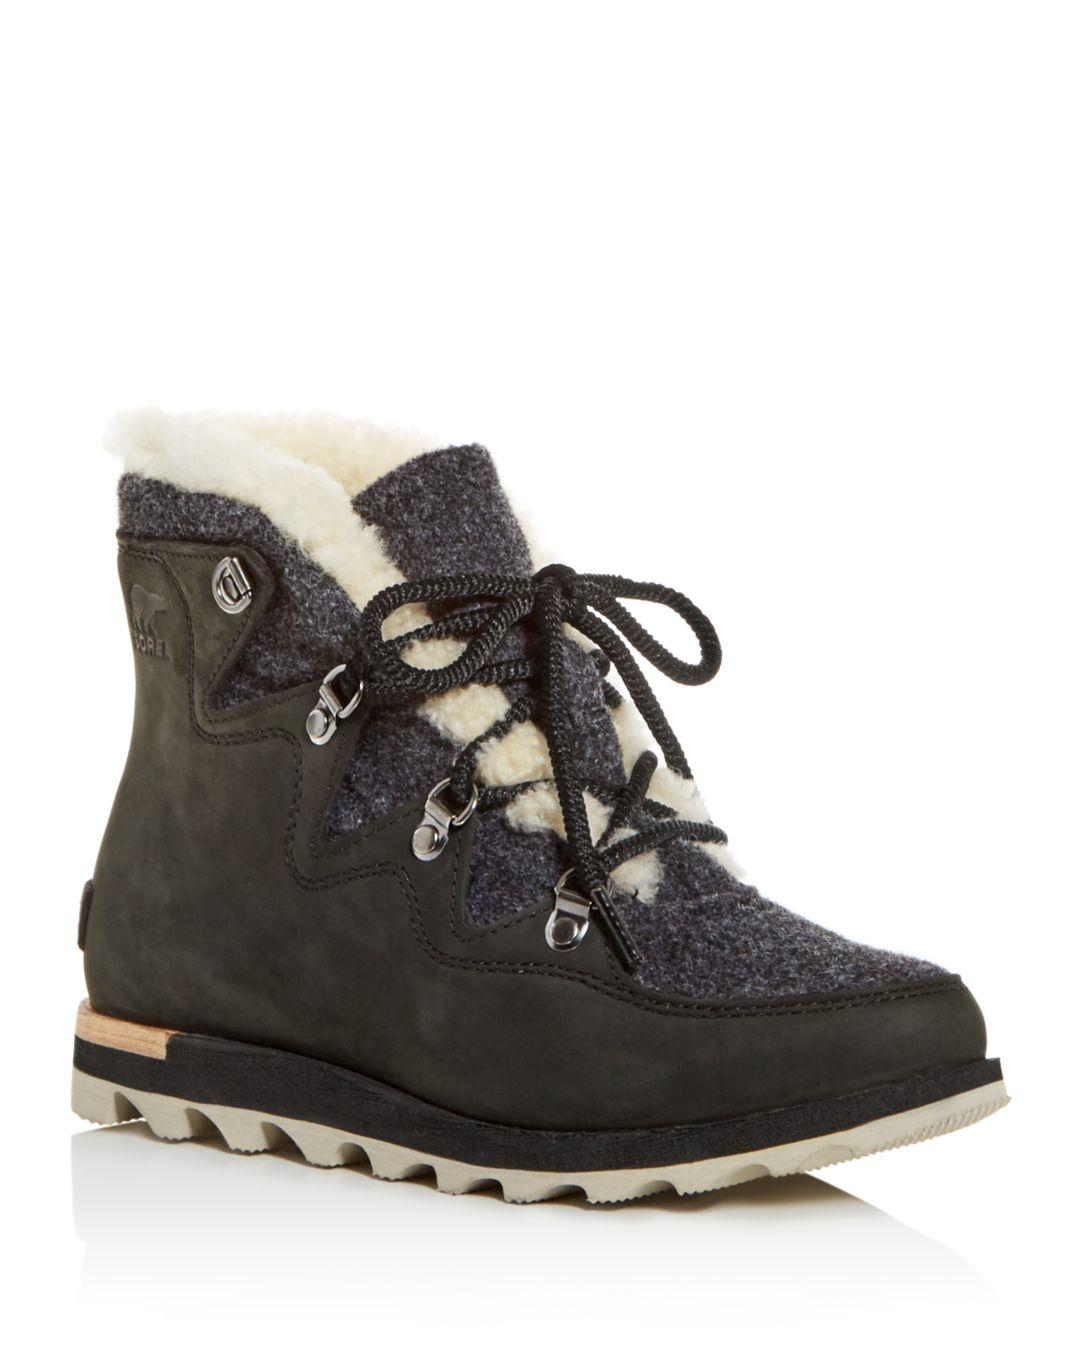 ad7e7105f68 Black Women's Sneakchic Alpine Holiday Shearling Waterproof Cold - Weather  Boots